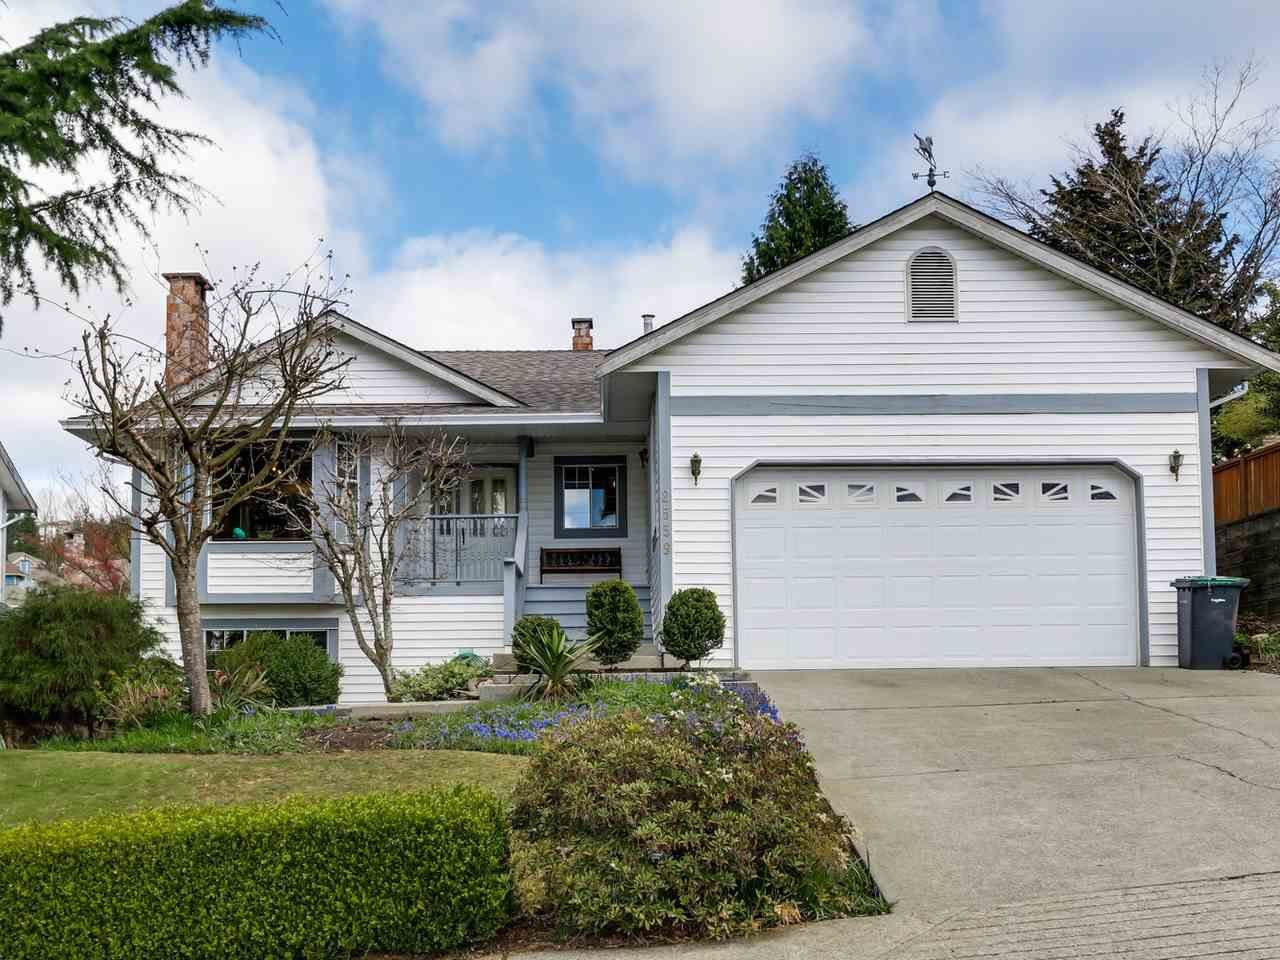 """Photo 2: Photos: 2559 BLUEBELL Avenue in Coquitlam: Summitt View House for sale in """"SUMMITT VIEW"""" : MLS®# R2064204"""